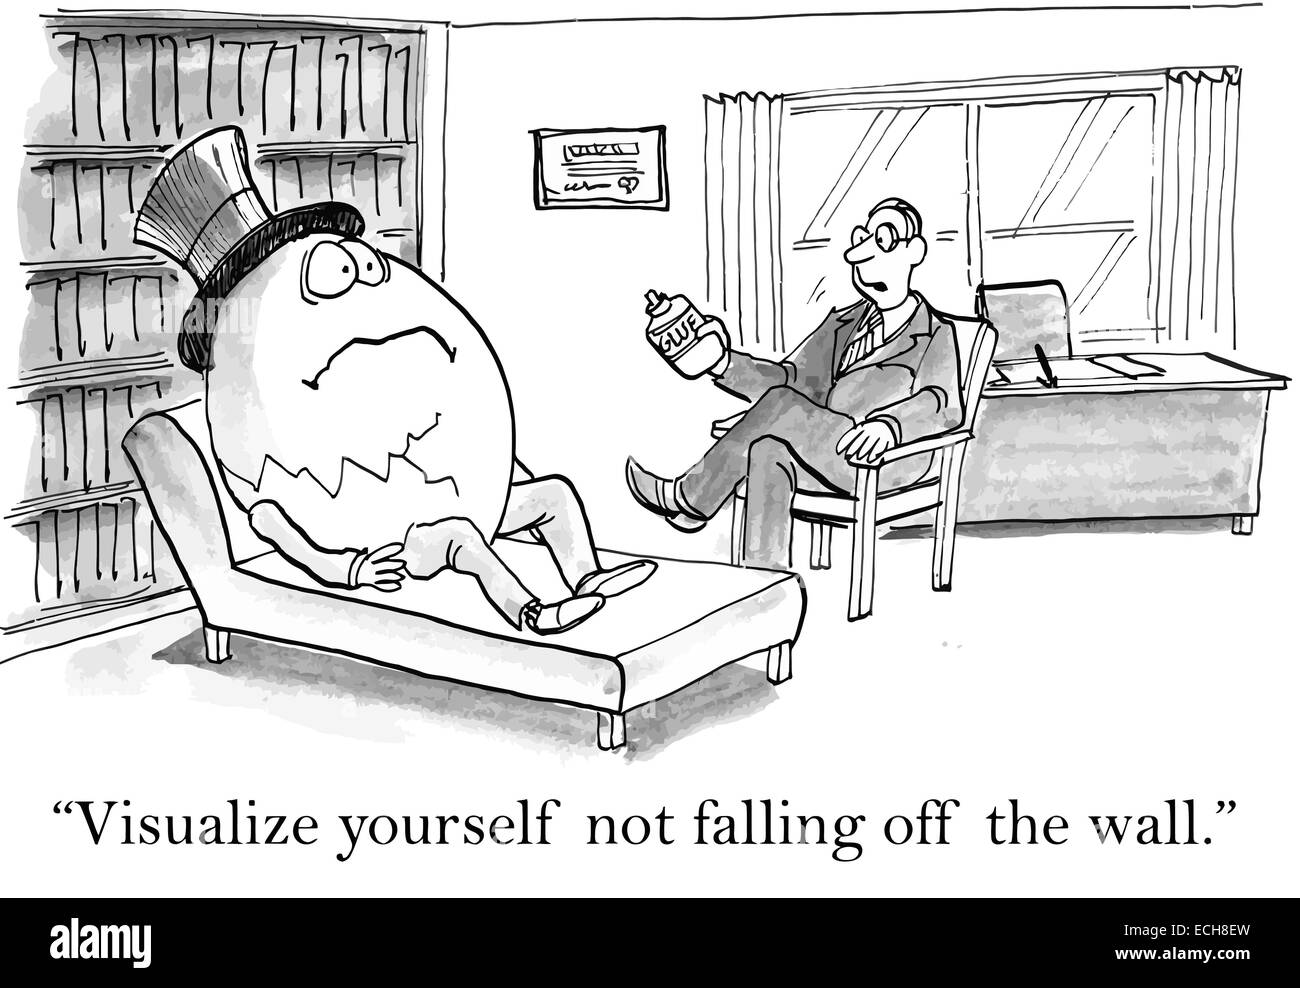 "The therapist says to Humpty Dumpty, ""Visualize yourself not falling off the wall"". Stock Vector"